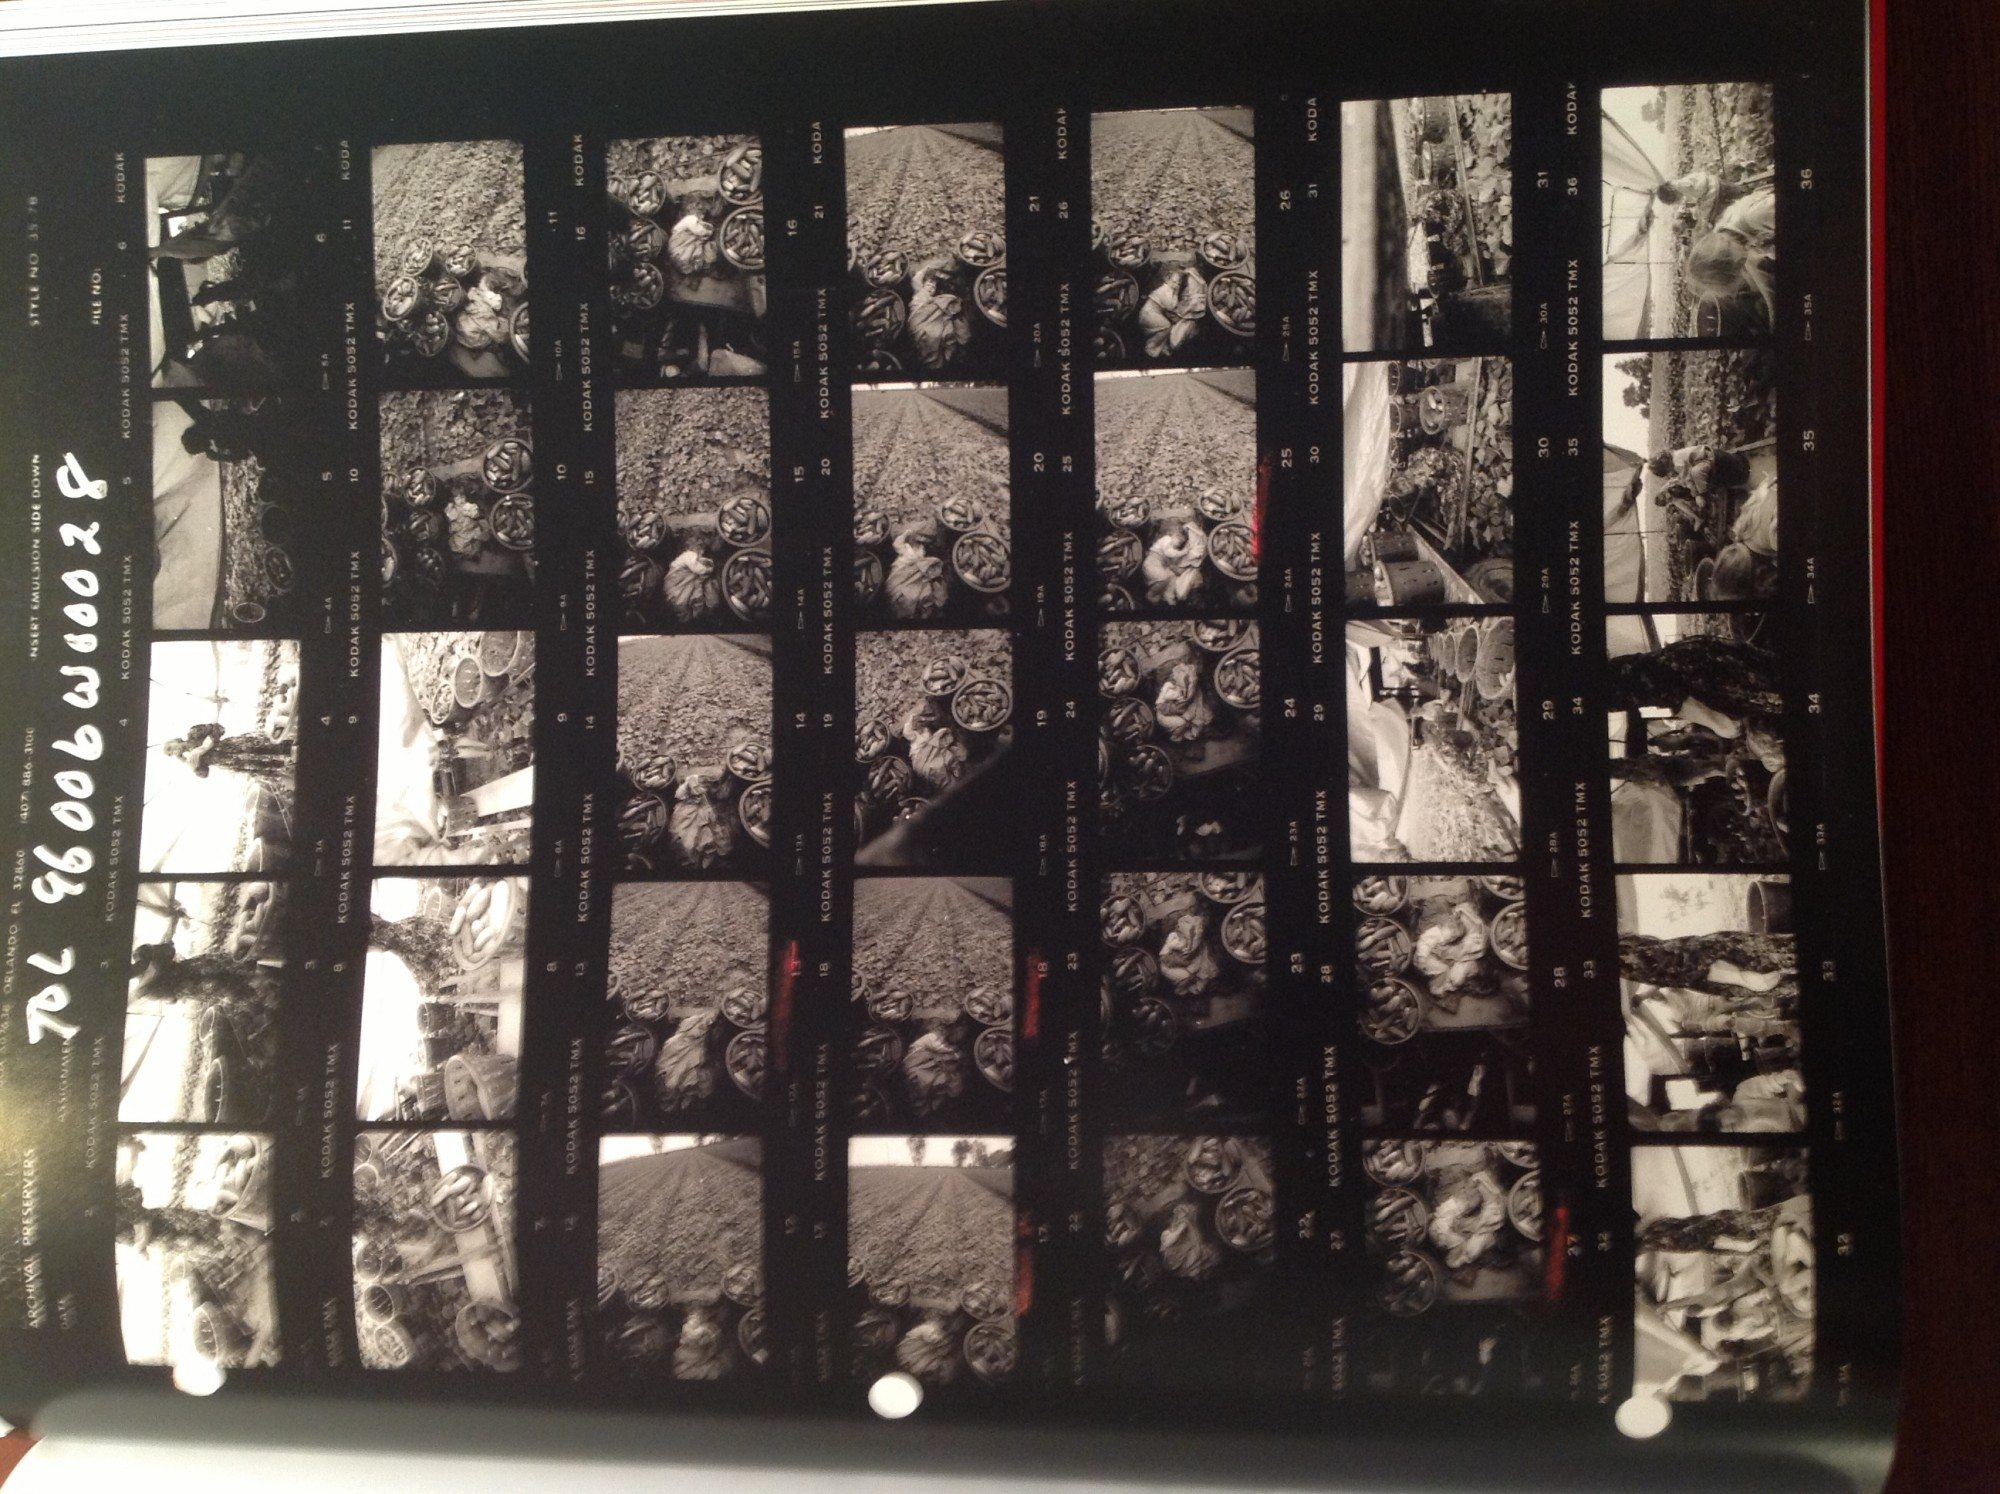 """Contact sheet from Larry Towell, """"Untitled"""", Ontario, Canada, 1996. © Larry Towell / Magnum Photos"""